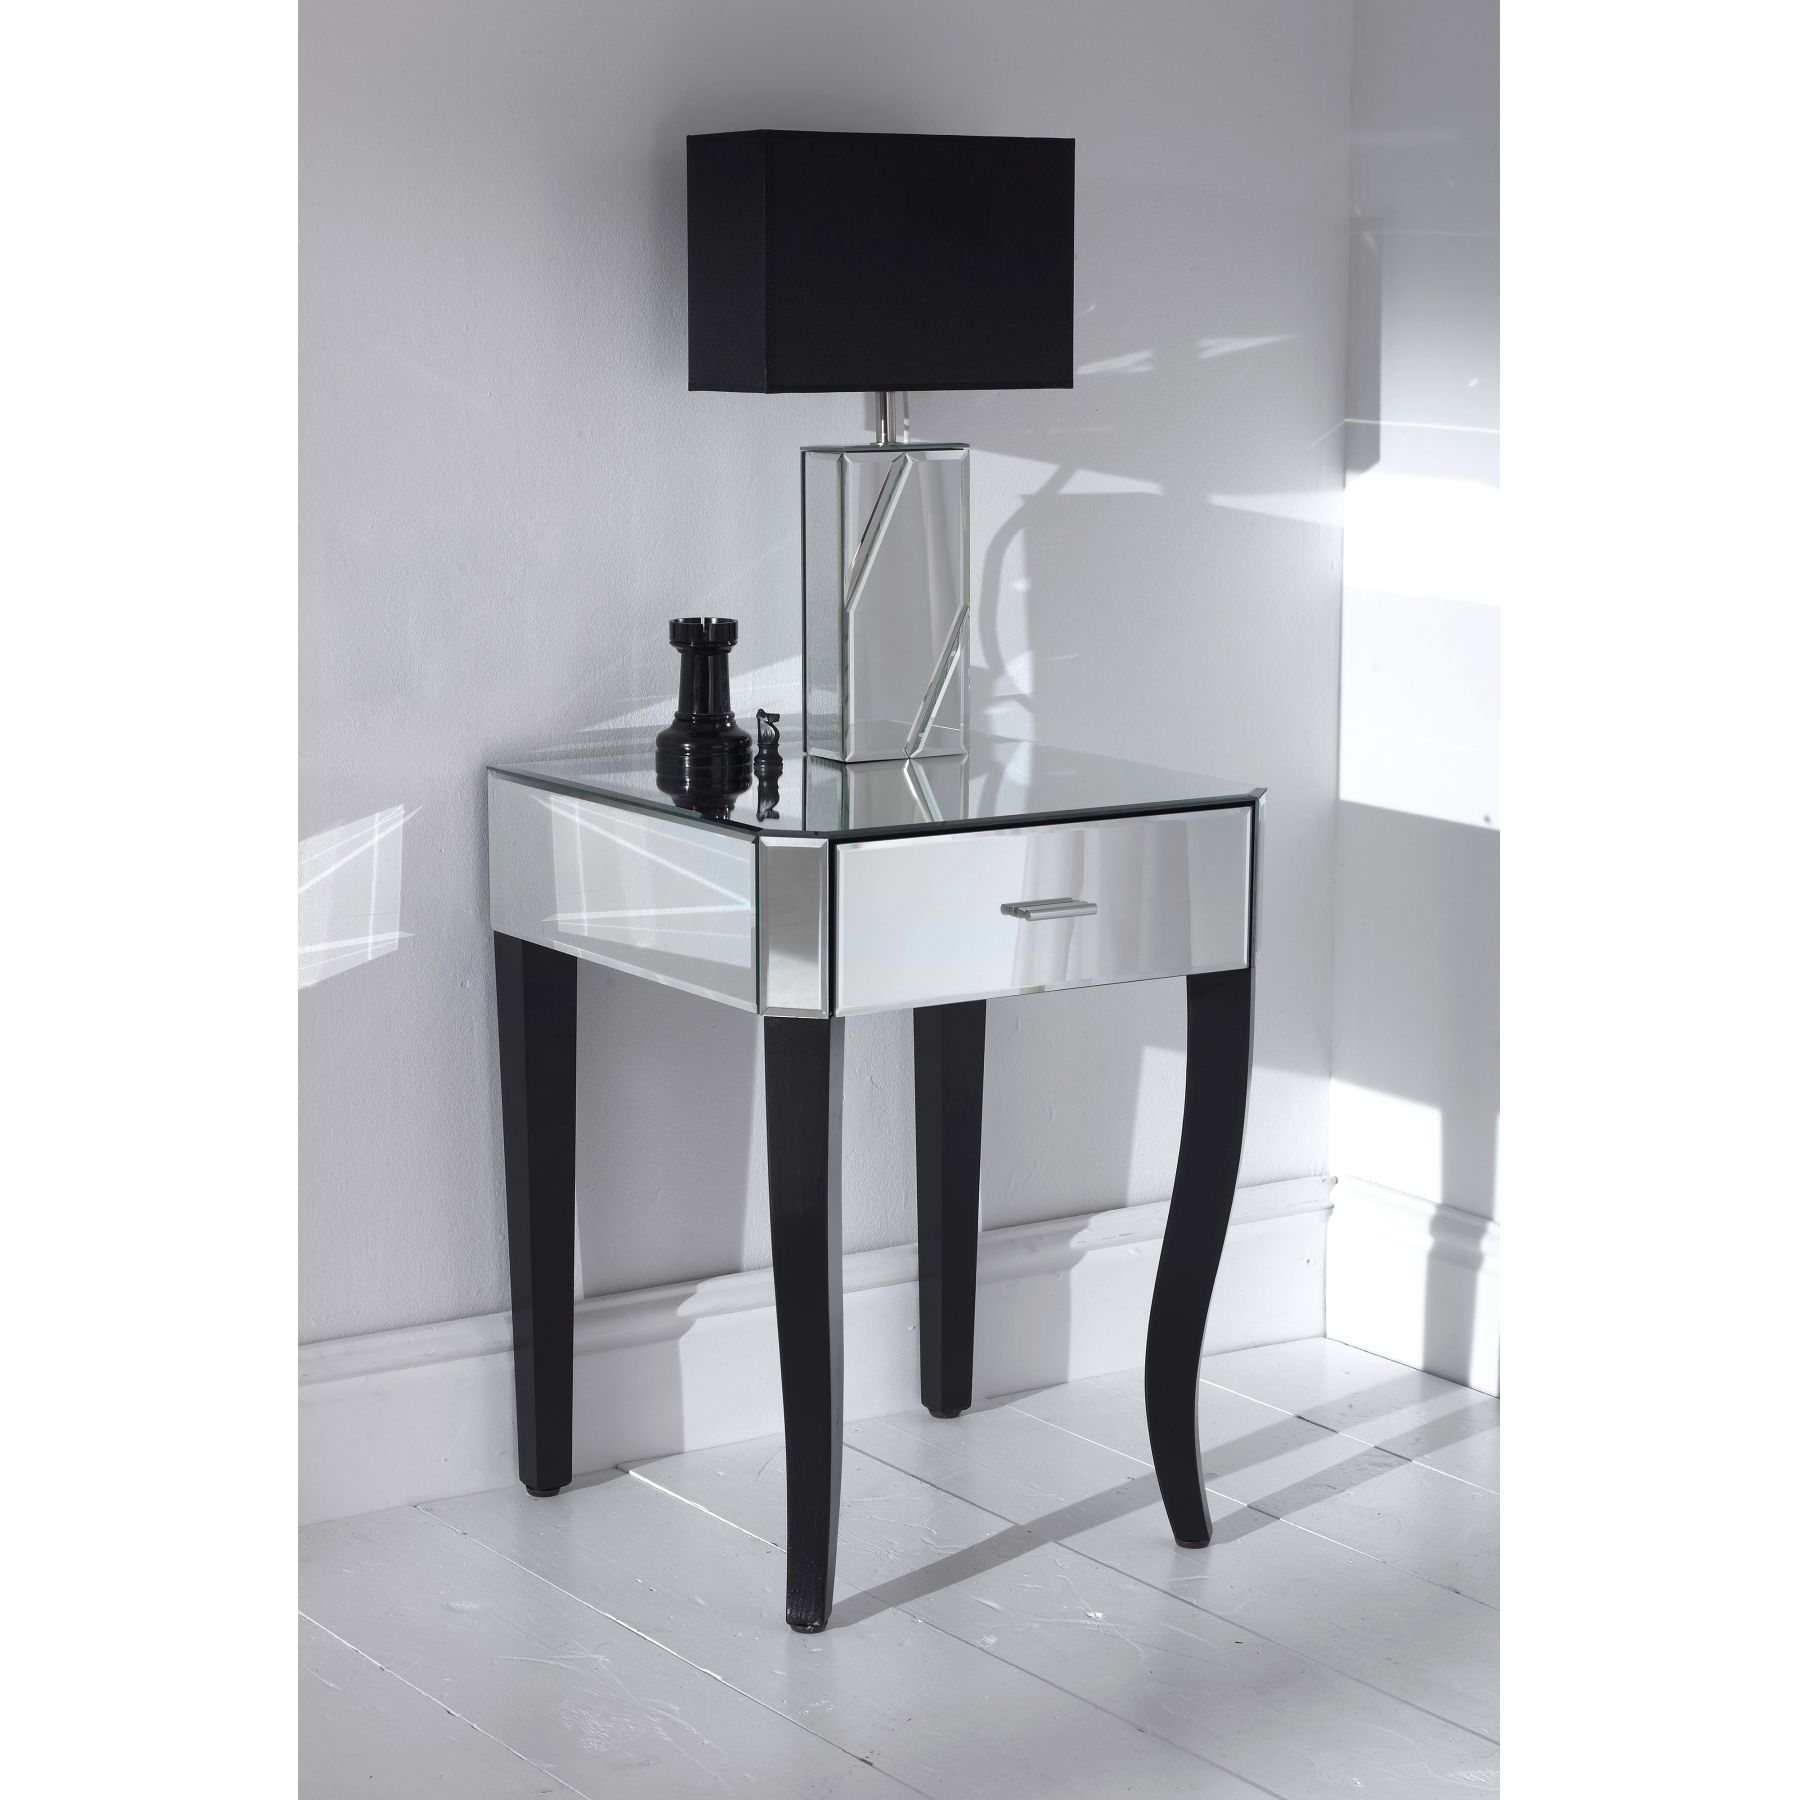 furniture elegant mirrored accent table for home ideas with single drawer plus lamp and tile floor bedroom decoration gold nightstand solid wood round coffee pedestal black target